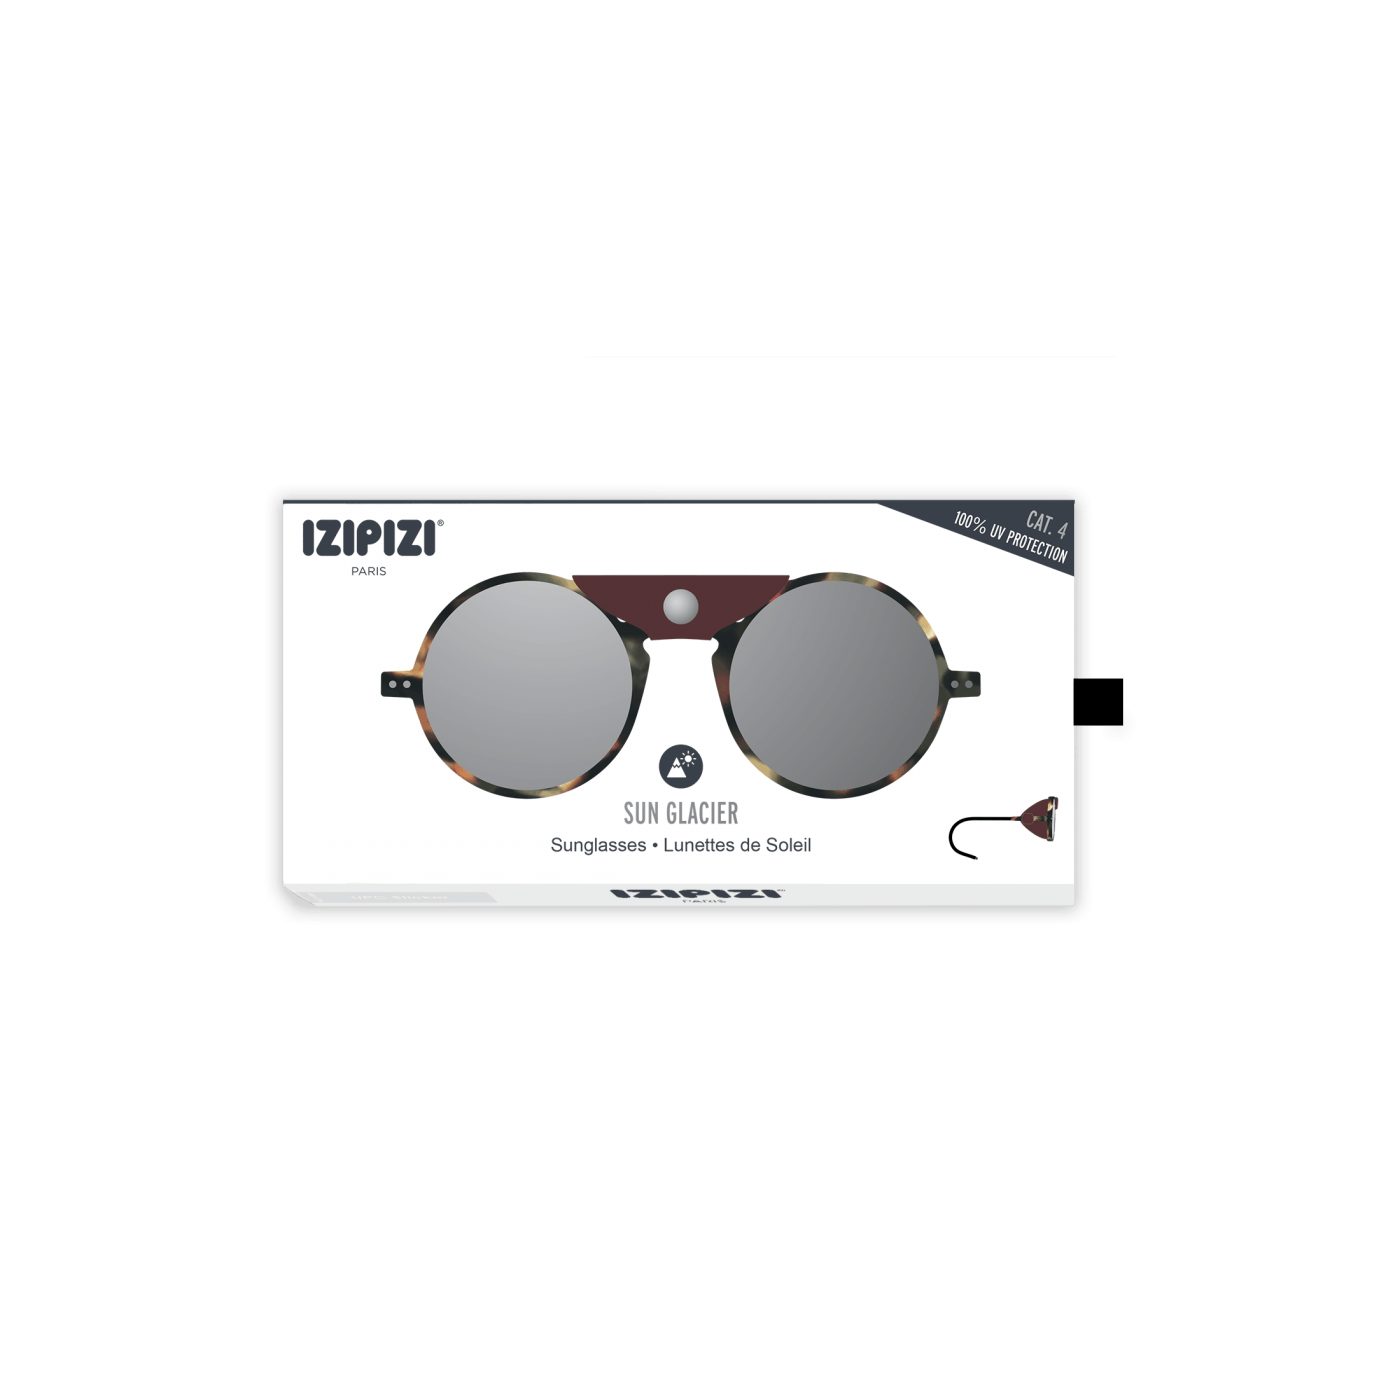 Izipizi Sun Glacier Sunglasses in Tortoise with Soft Brown Shields and Mirror Lens